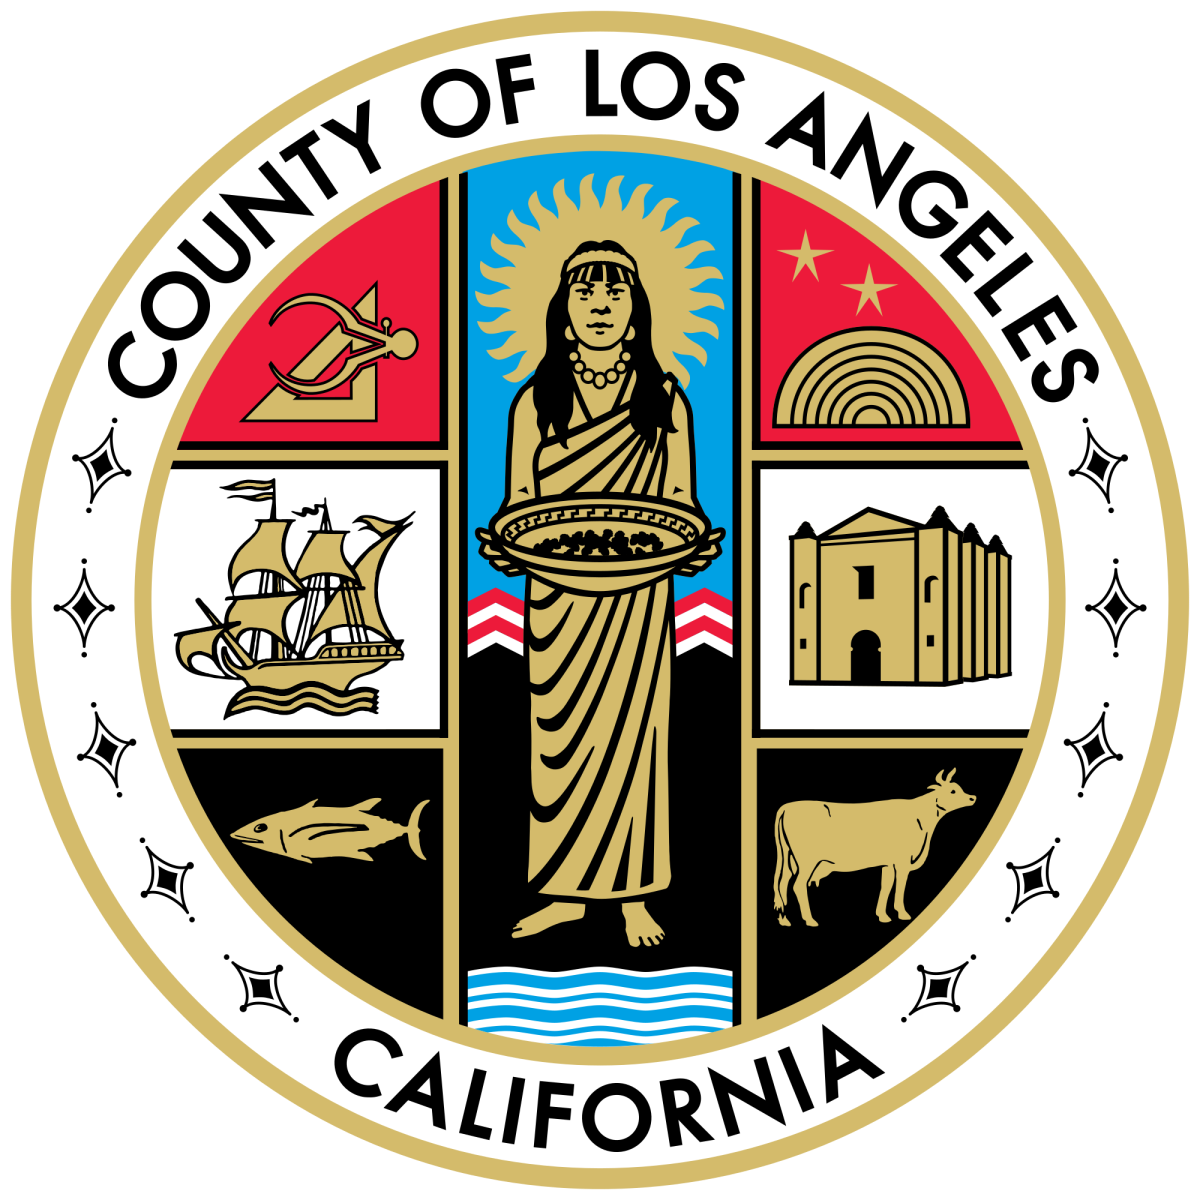 Seal of Los Angeles County, California.